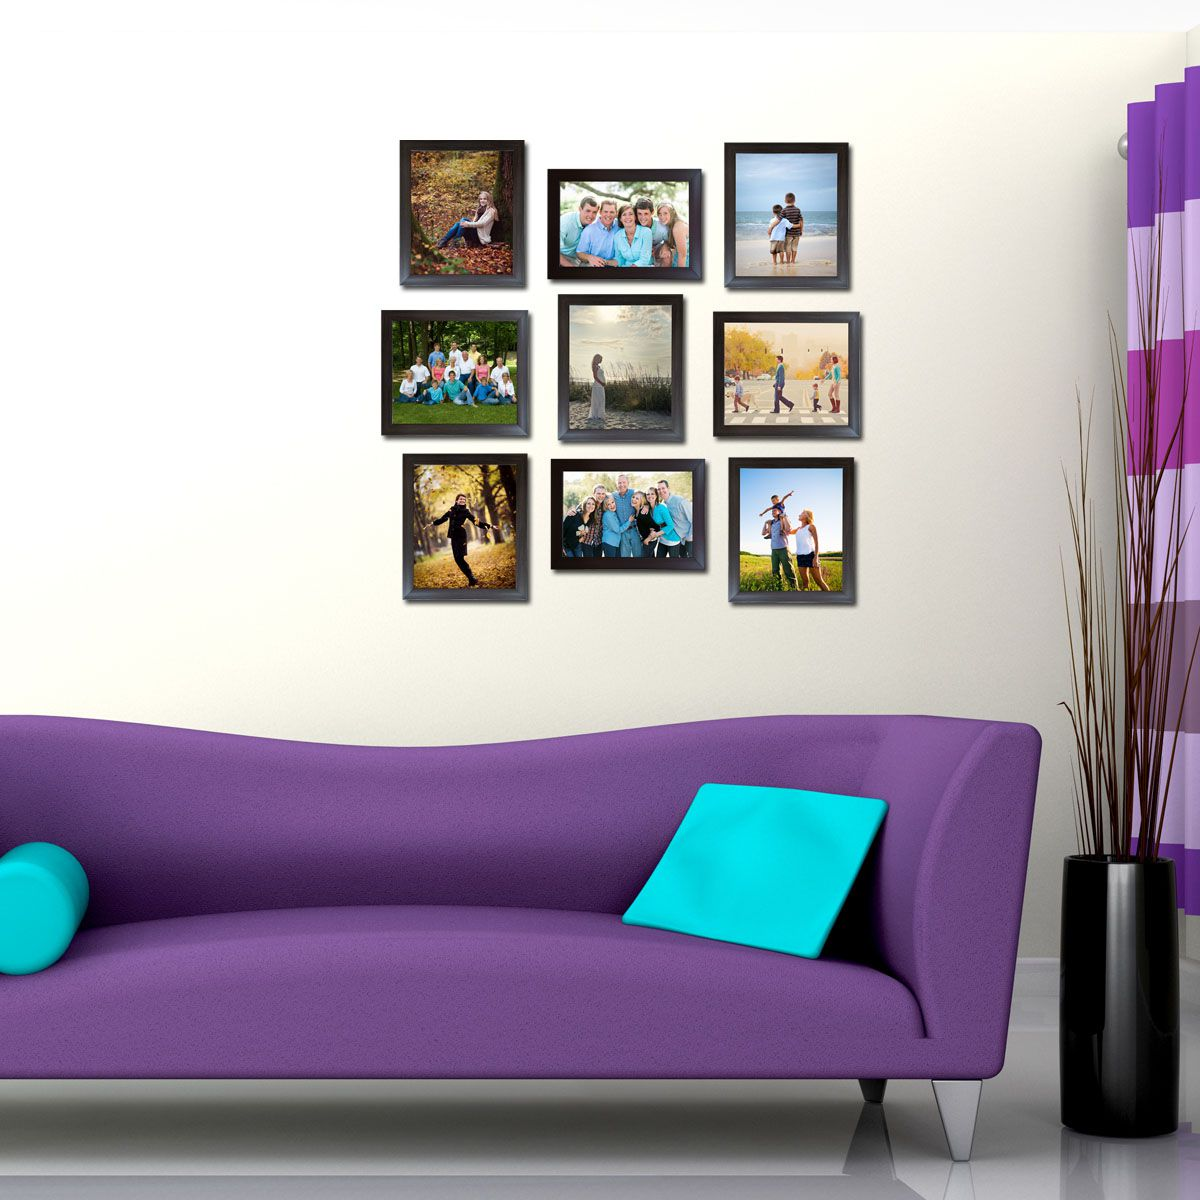 Trends on Wall Acrylic Brown Photo Frame Sets - Pack of 9